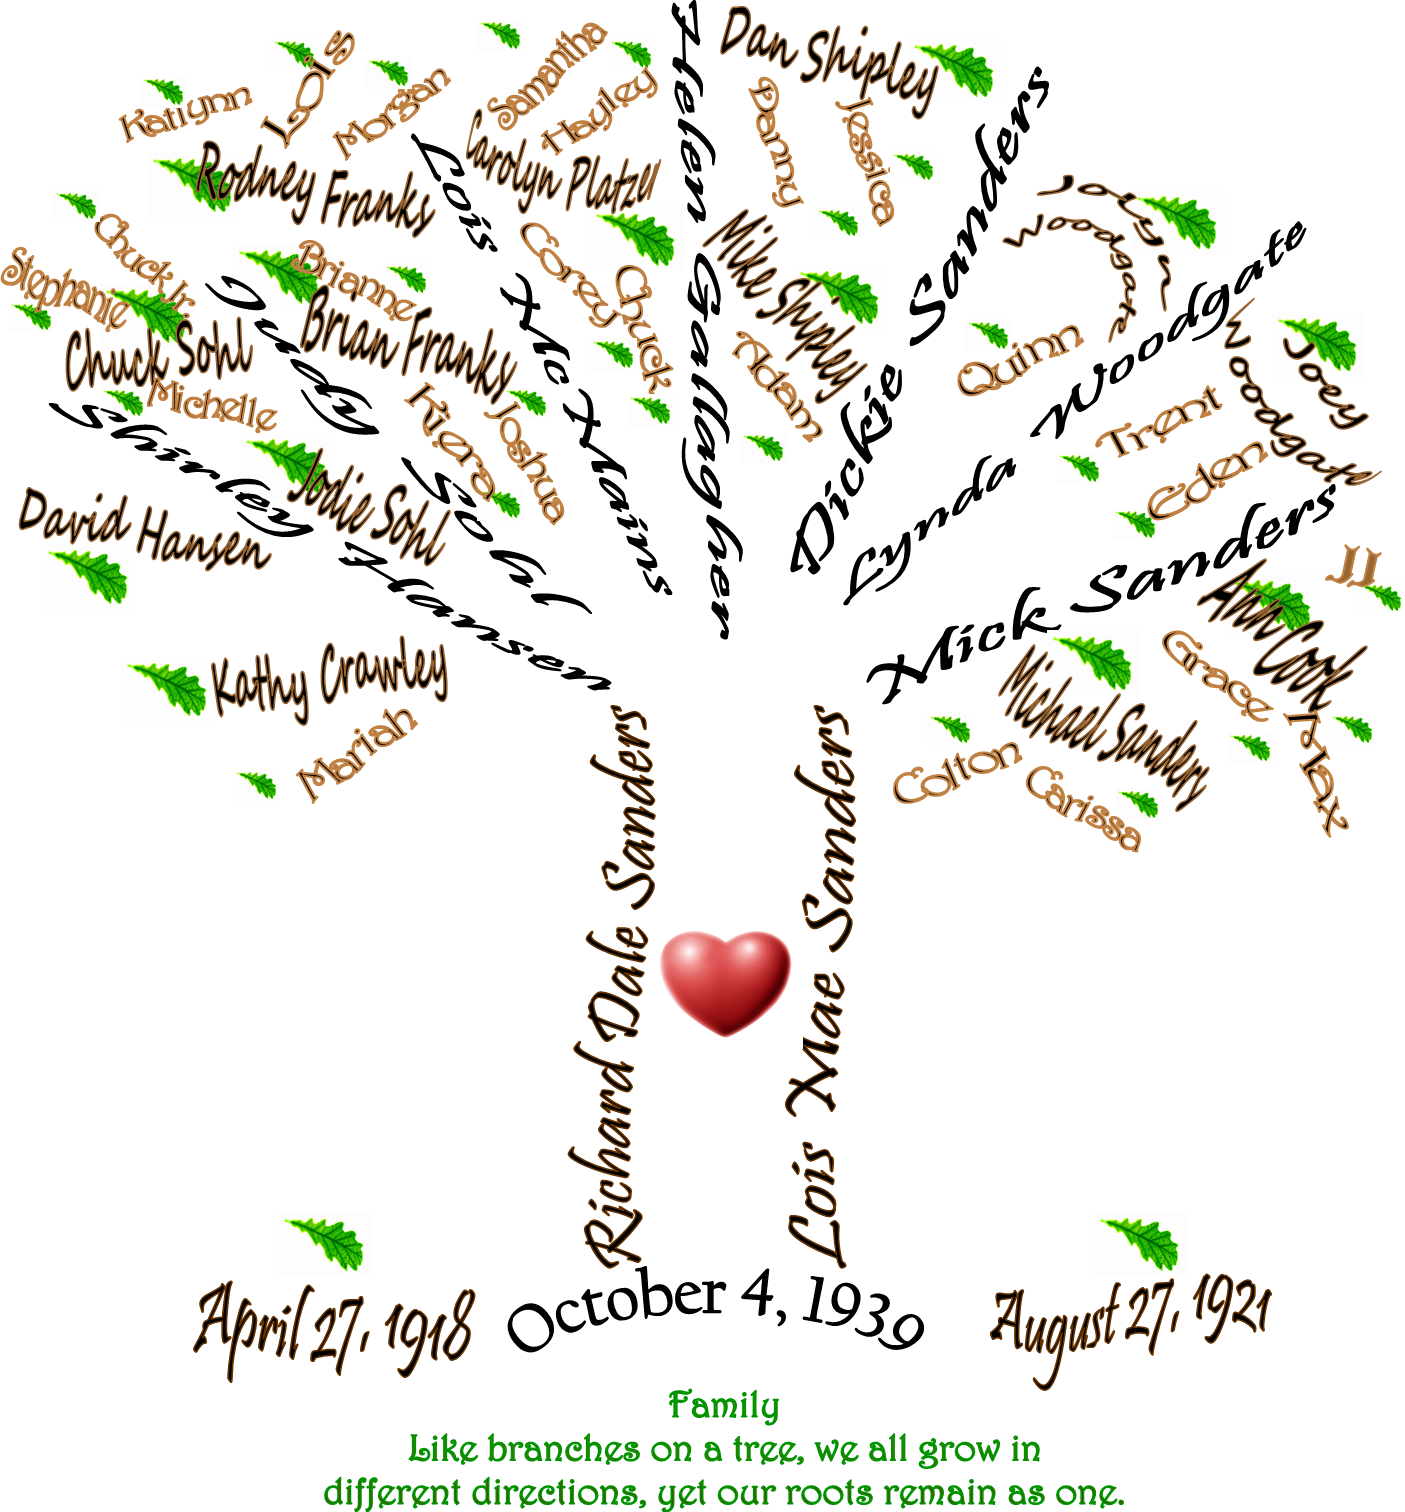 i did it created a family tree for the memorial this weekend